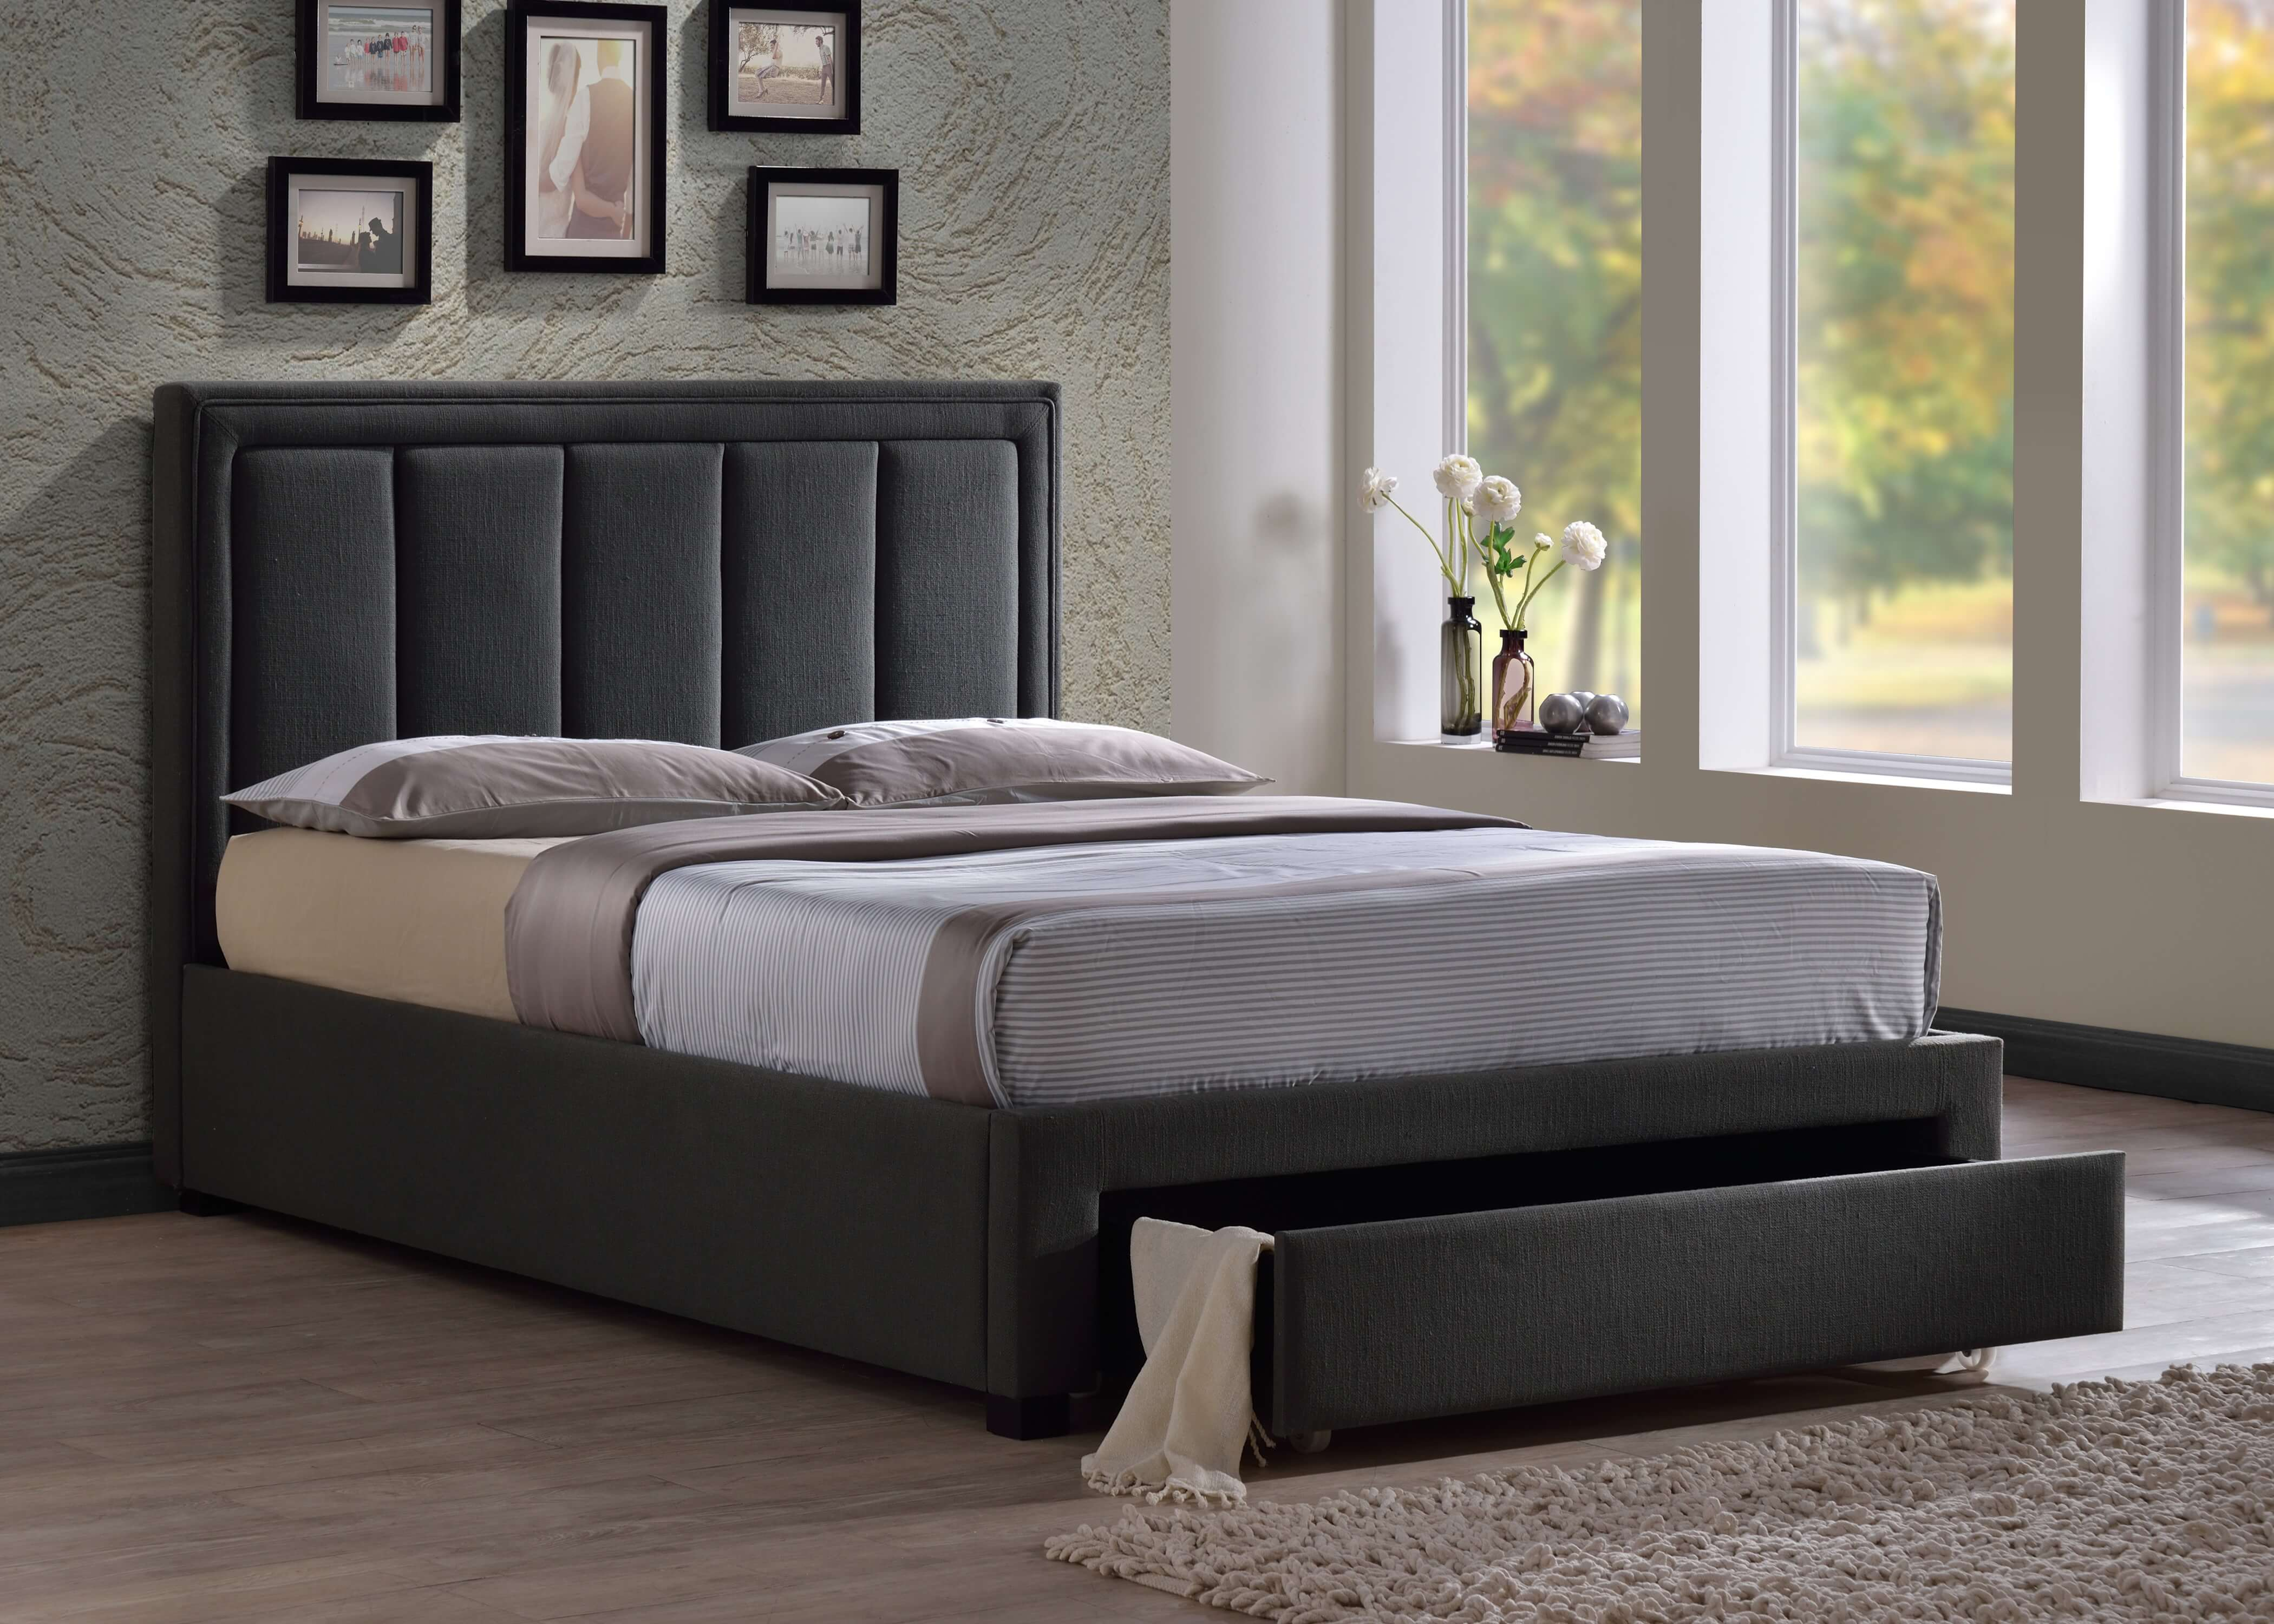 https://www.firstfurniture.co.uk/pub/media/catalog/product/a/t/atlanta_grey.jpg